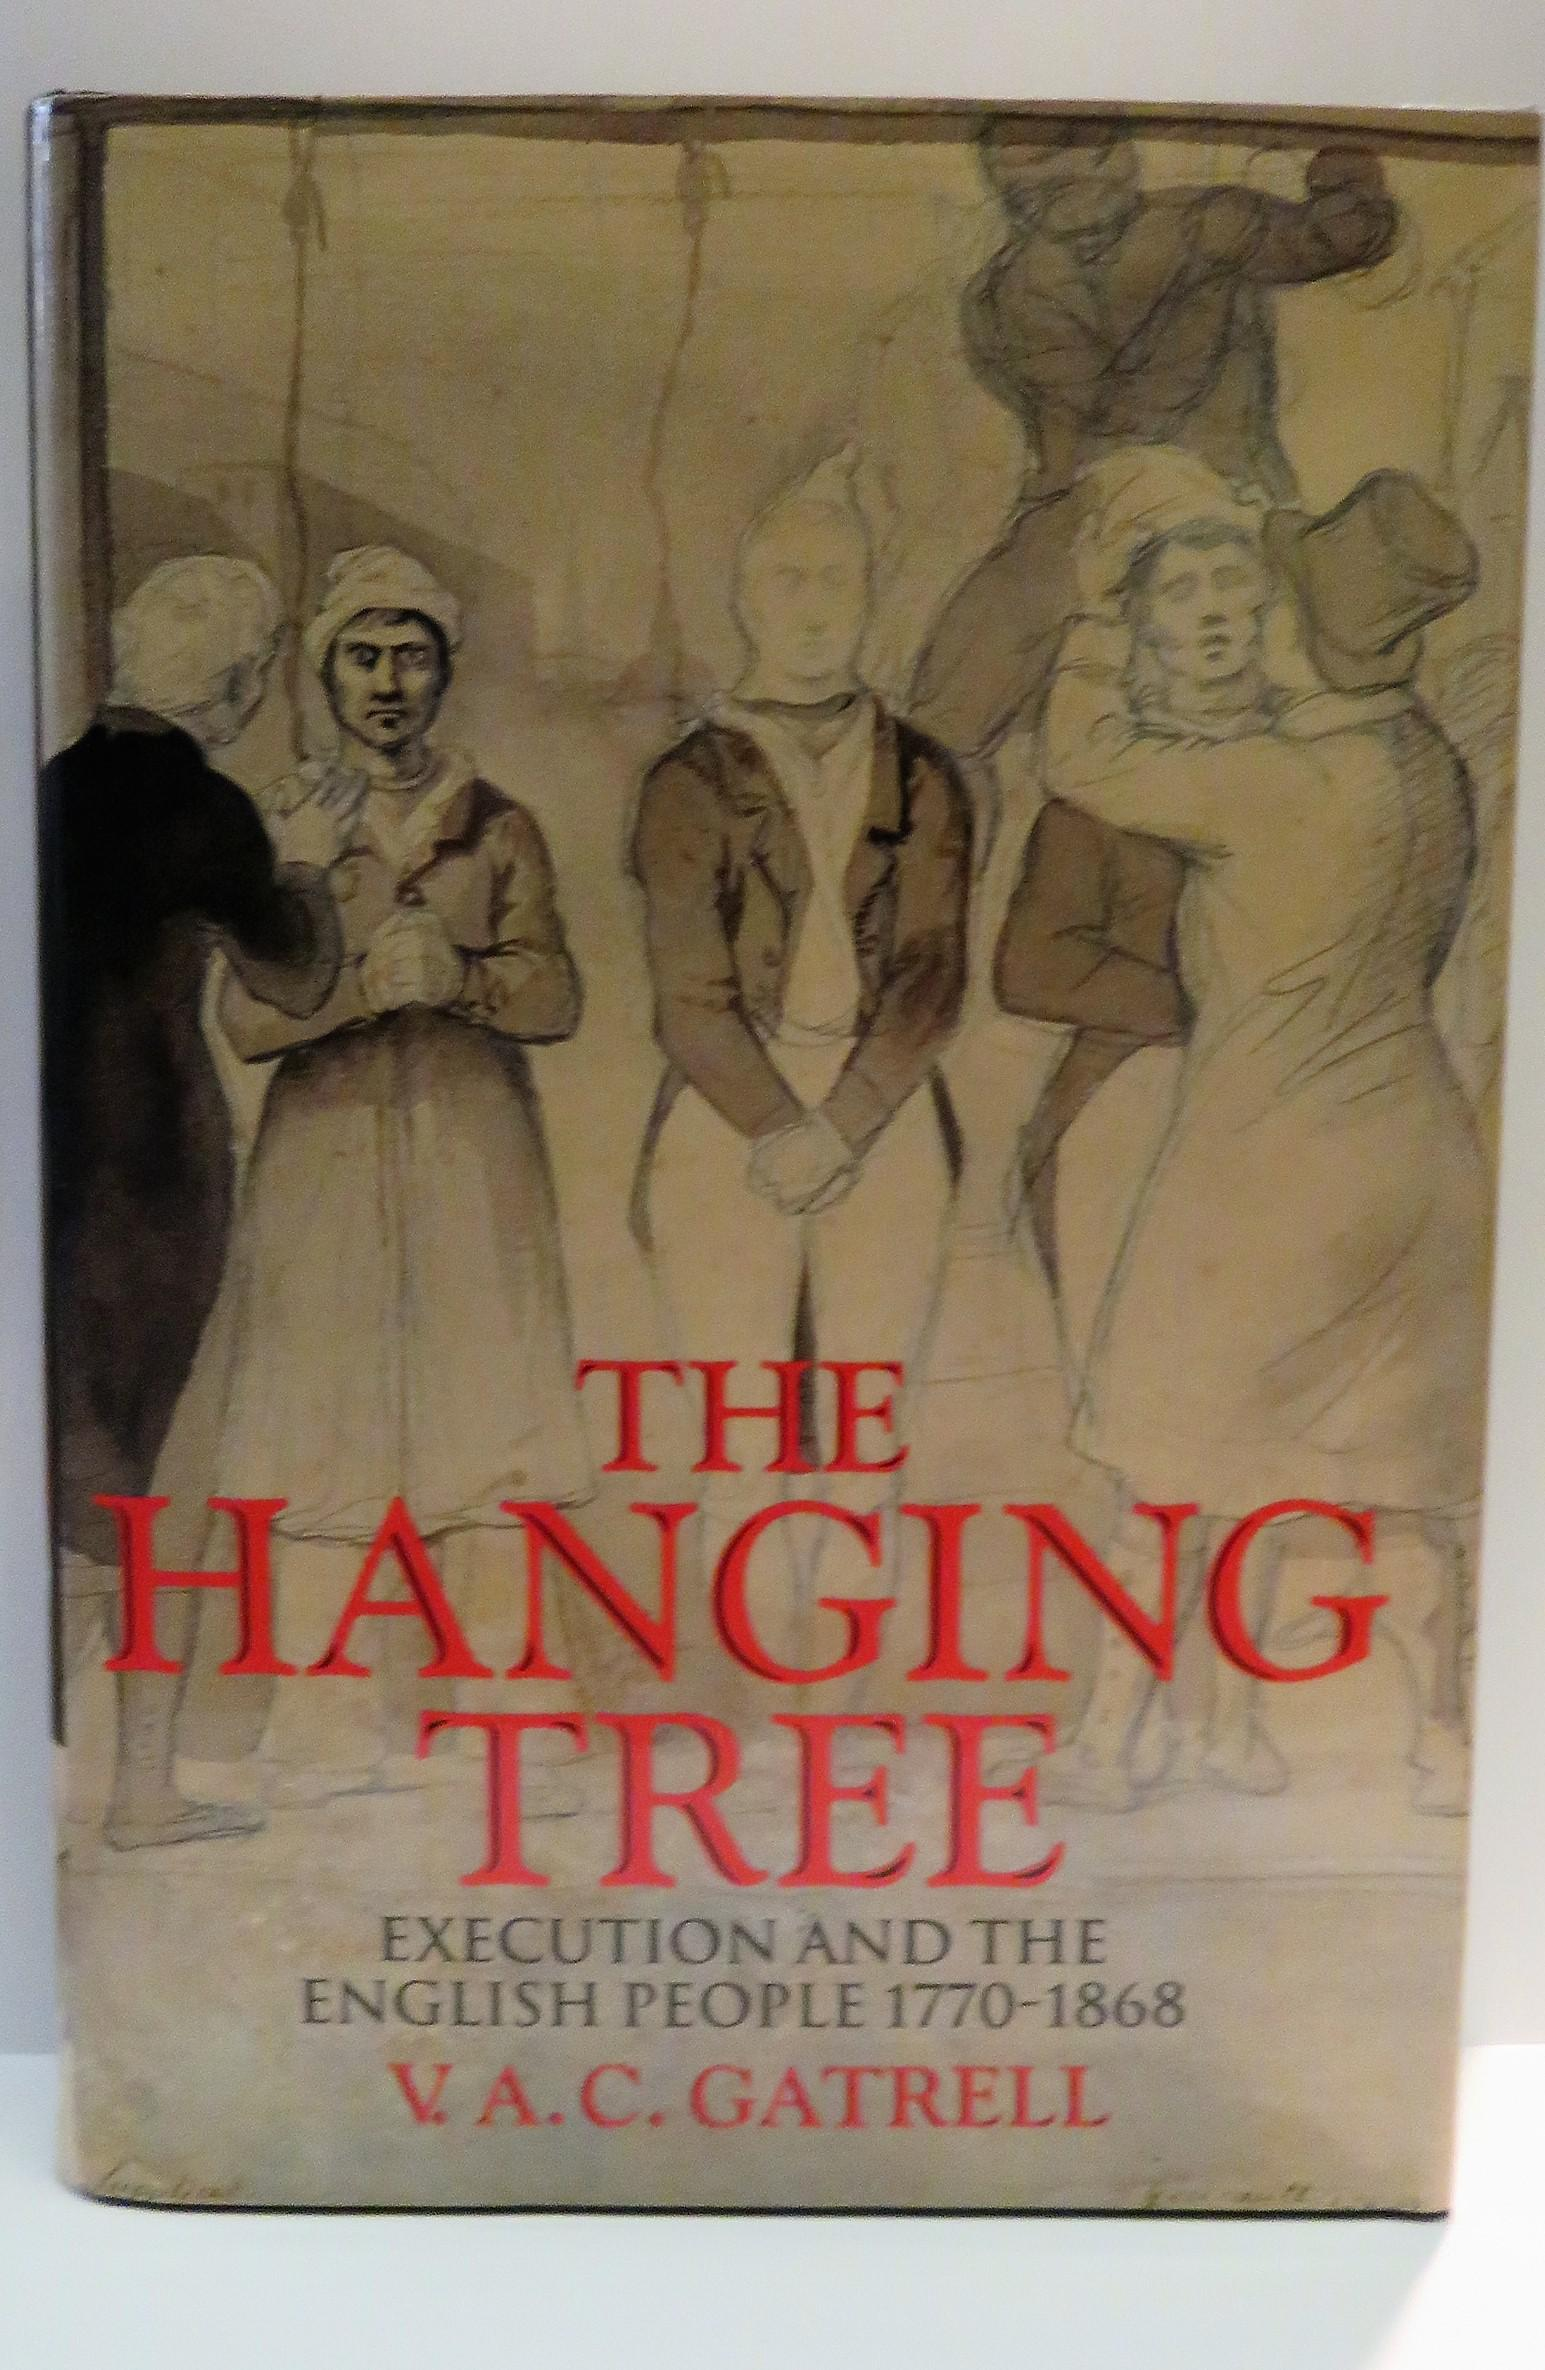 The Hanging Tree Execution and the English People 1170-1868